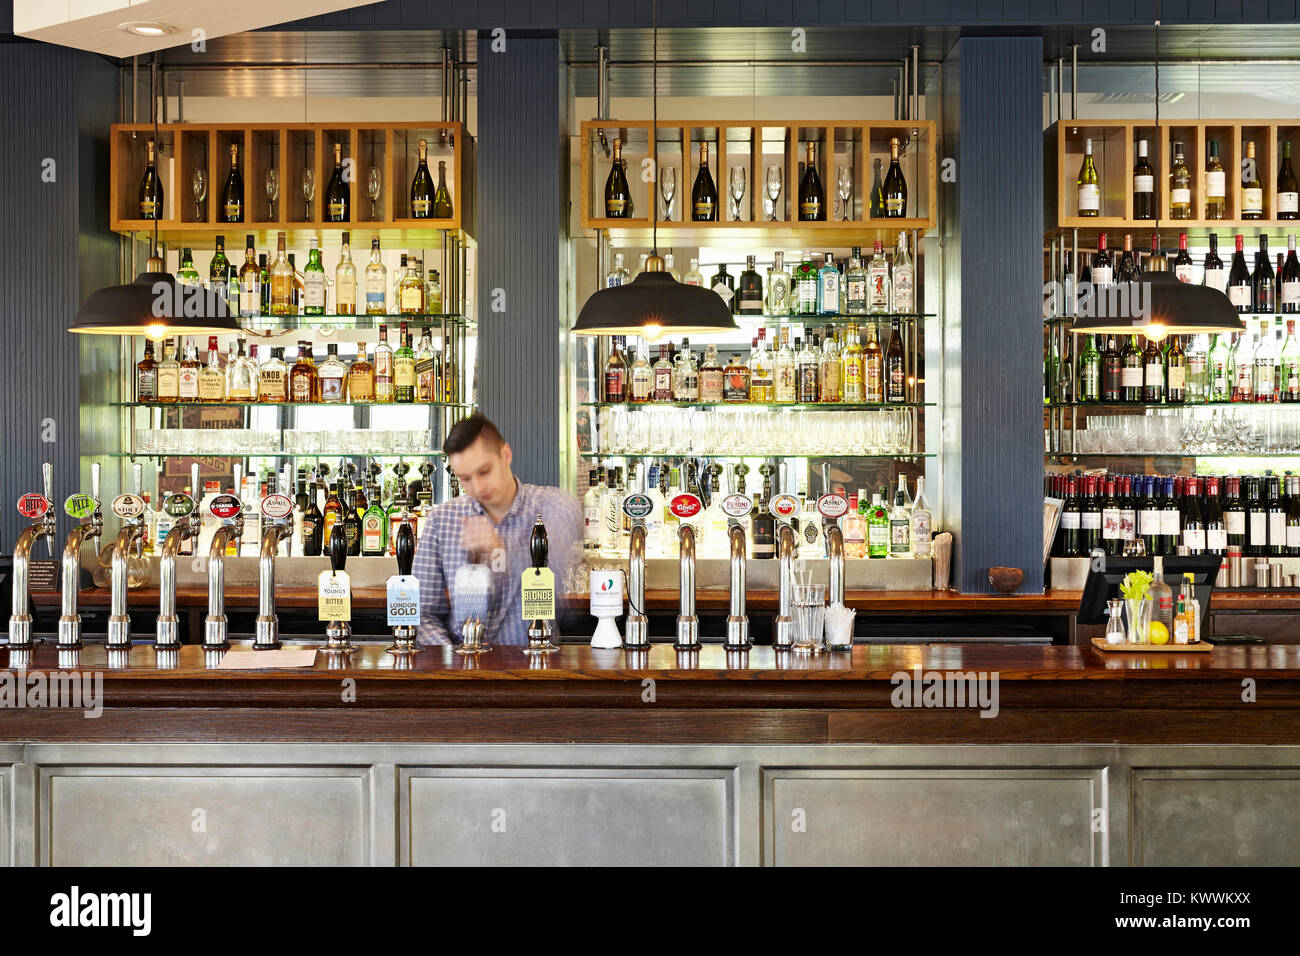 The Beaufort pub and restaurant in Colindale, North London, England - Stock Image